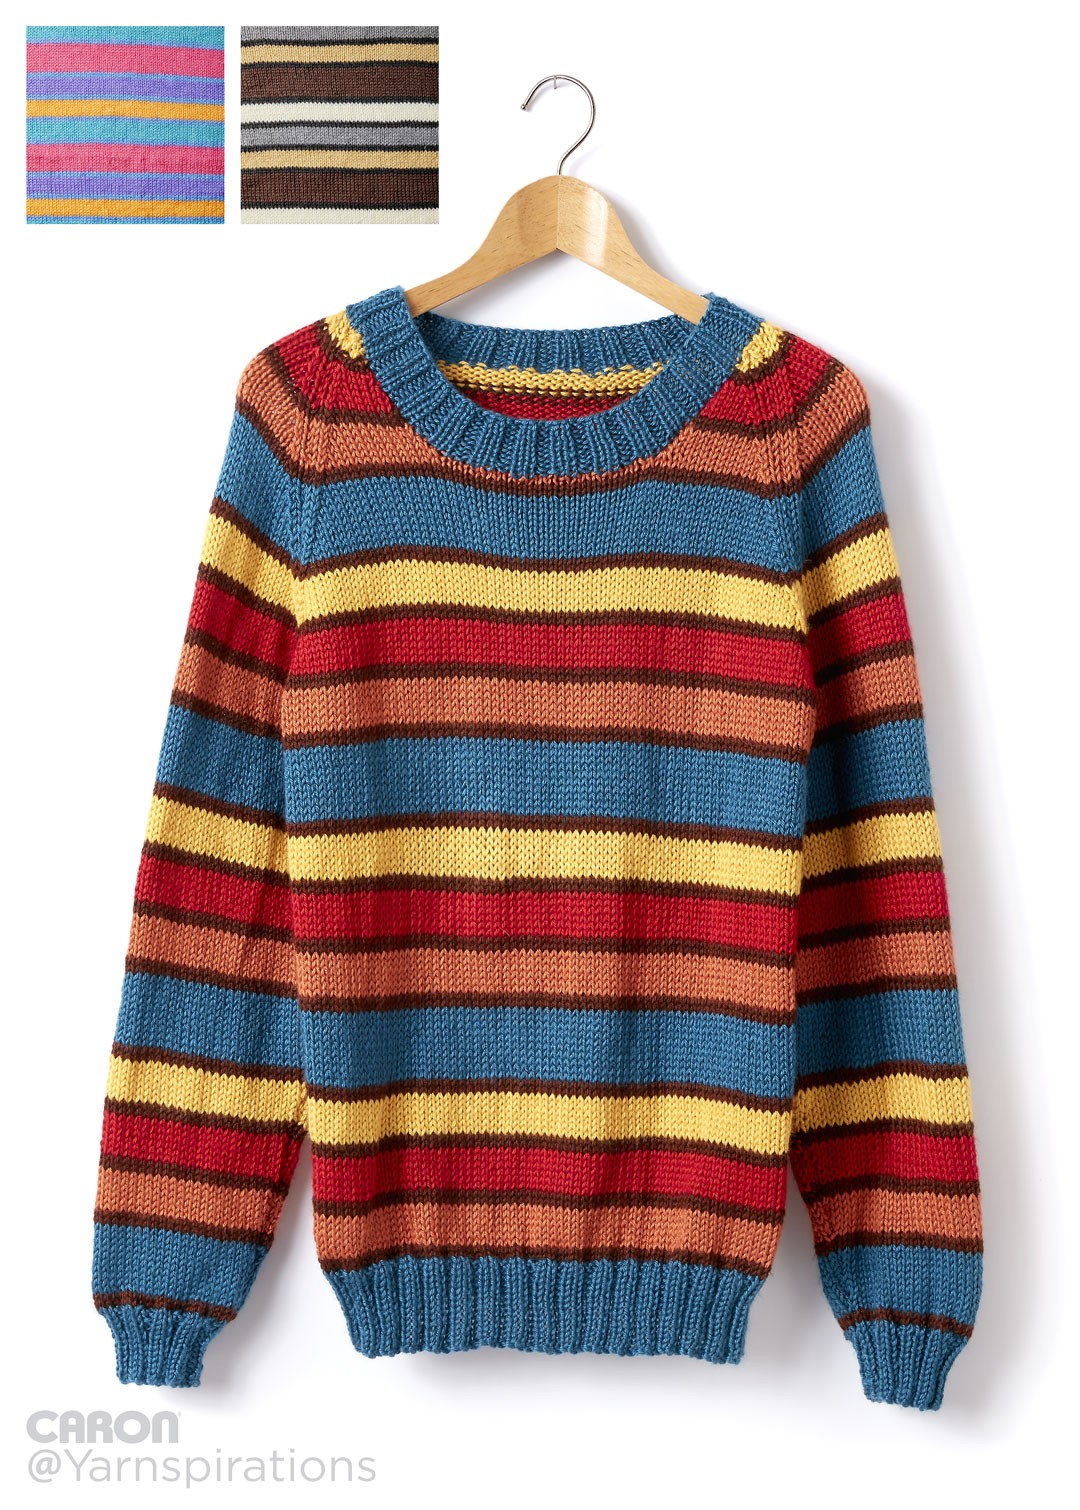 Knitting Pullover Patterns : Caron adult knit crew neck striped pullover pattern